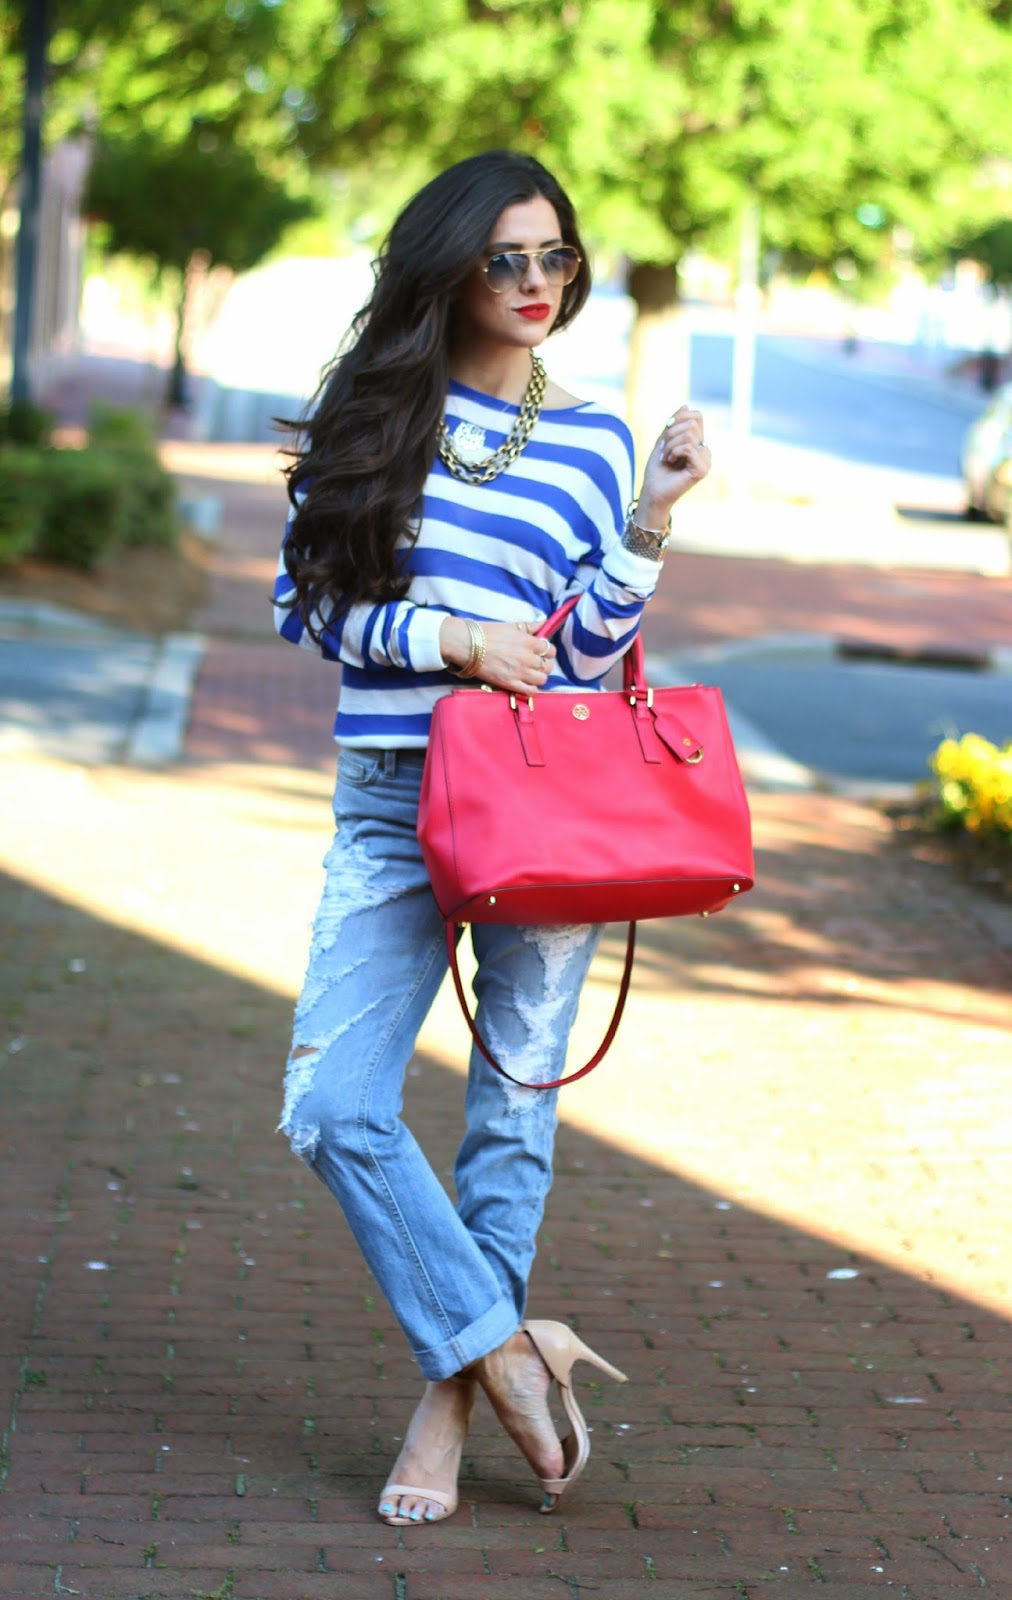 www.TheSweetestthingBlog.com, Emily Gemma, boyfriend jeans, destroyed boyfriend jeans, dittos boyfriend jeans, ripped boyfriend jeans, ripped denim, nordstrom ripped denim, striped sweater, spring sweathers, rayban aviators, tory burch handbag, red tory burch robinson tote, red tory burch purse, micheal kors runway watch, stila lipstick in beso, nude zara sandals, nude strappy sandals, gold arm party, gold bangles, red lips, long hair for brunettes, bellami hair extension, mocha chino hair extensions, summer fashion 2014, pinterest summer outfits 2014, how to wear boyfriend jeans in summer, how to wear boyfriend jeans with sweaters